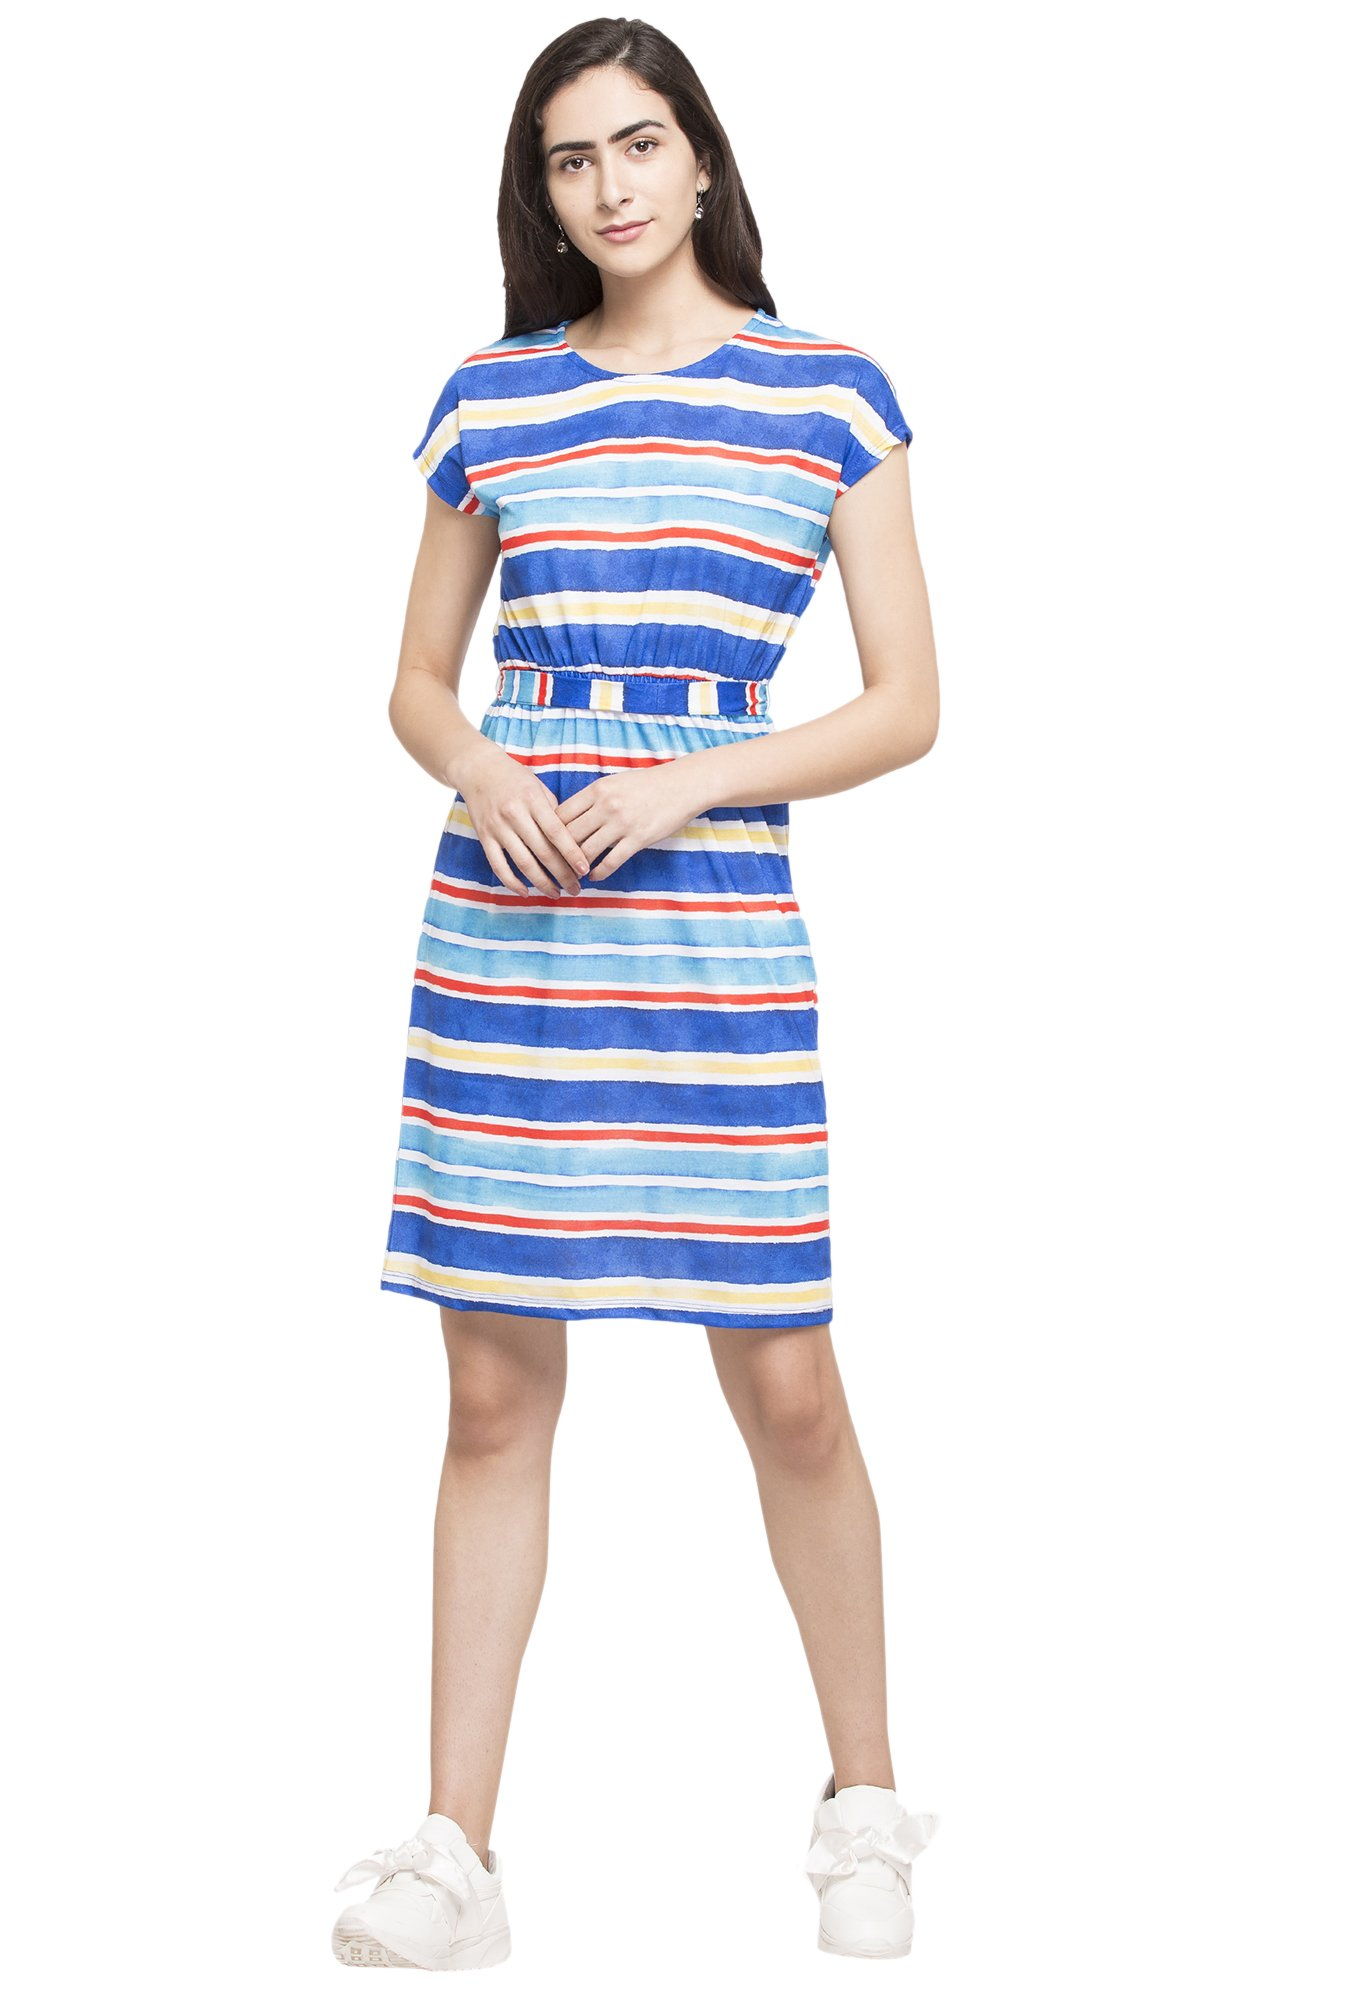 35eb572655c Buy Globus Multicolor Striped Dress for Women Online   Tata CLiQ